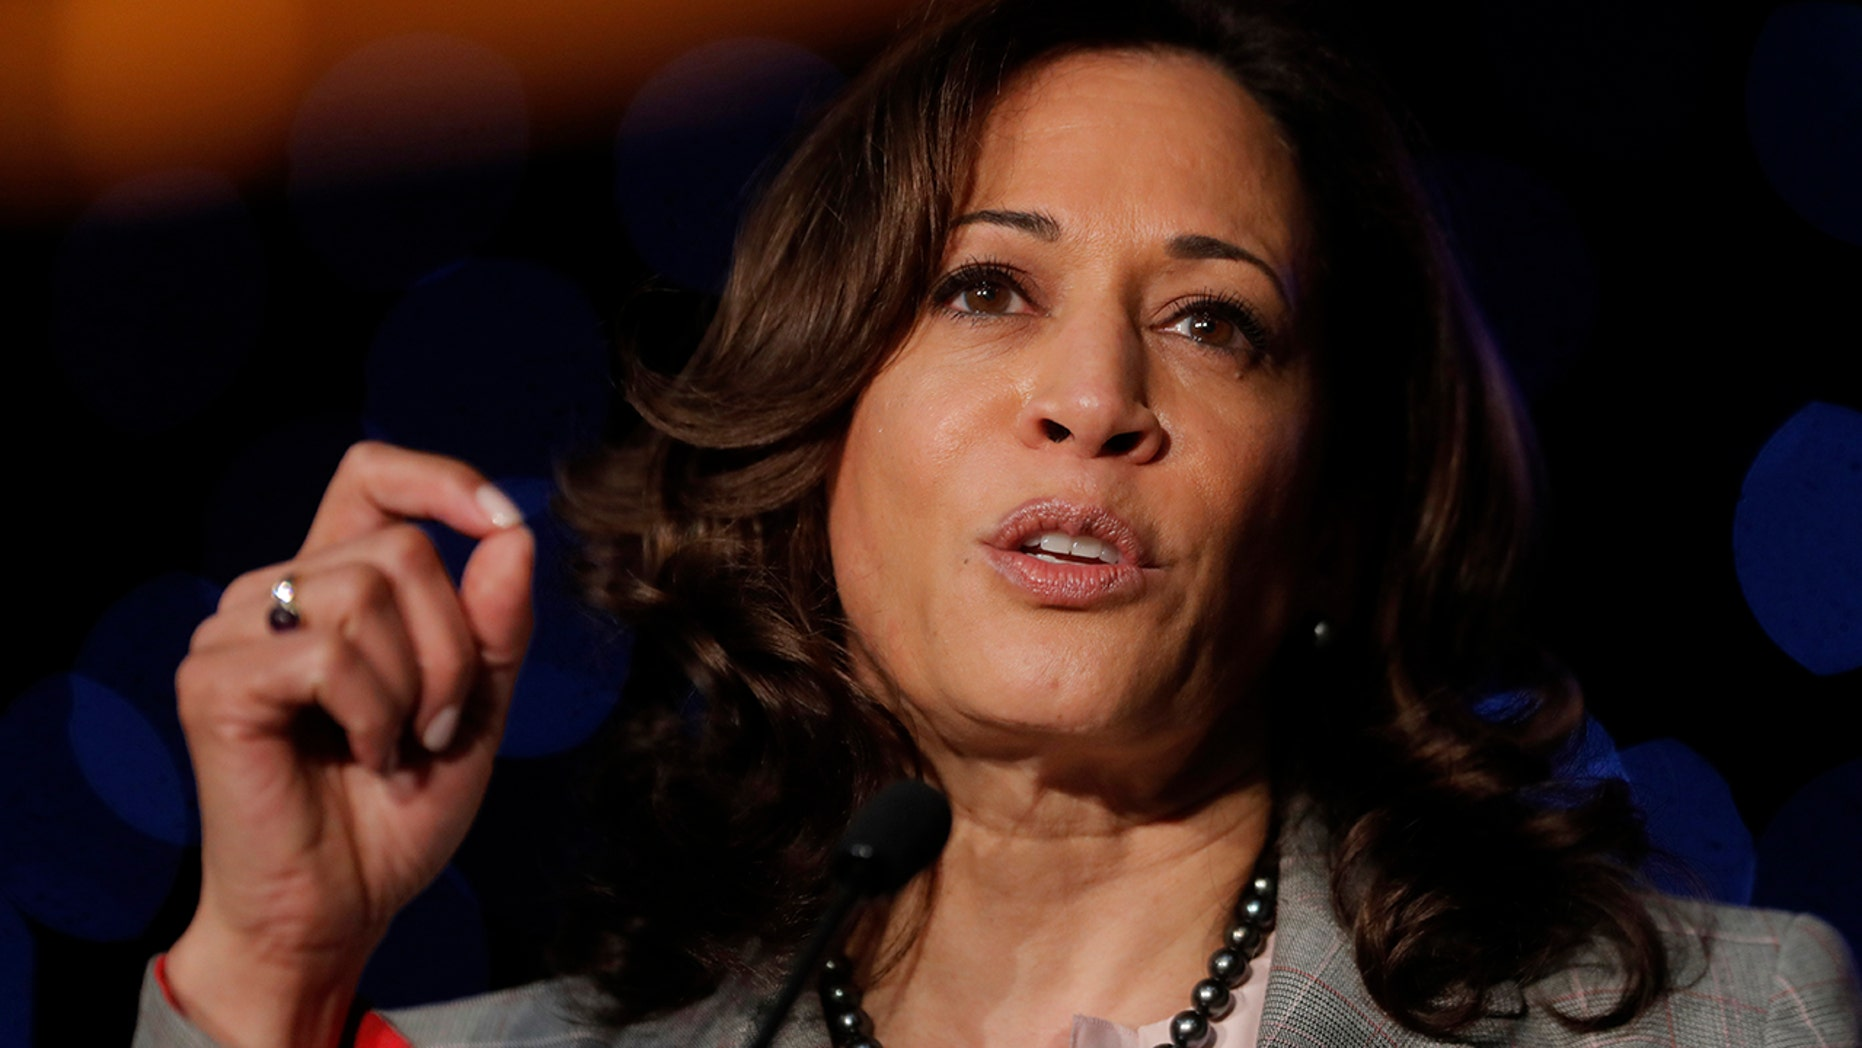 Democratic presidential candidate Sen. Kamala Harris, D-CA, speaks at the Alpha Kappa Alpha Sorority South Central Regional Conference in New Orleans. (AP Photo / Gerald Herbert)